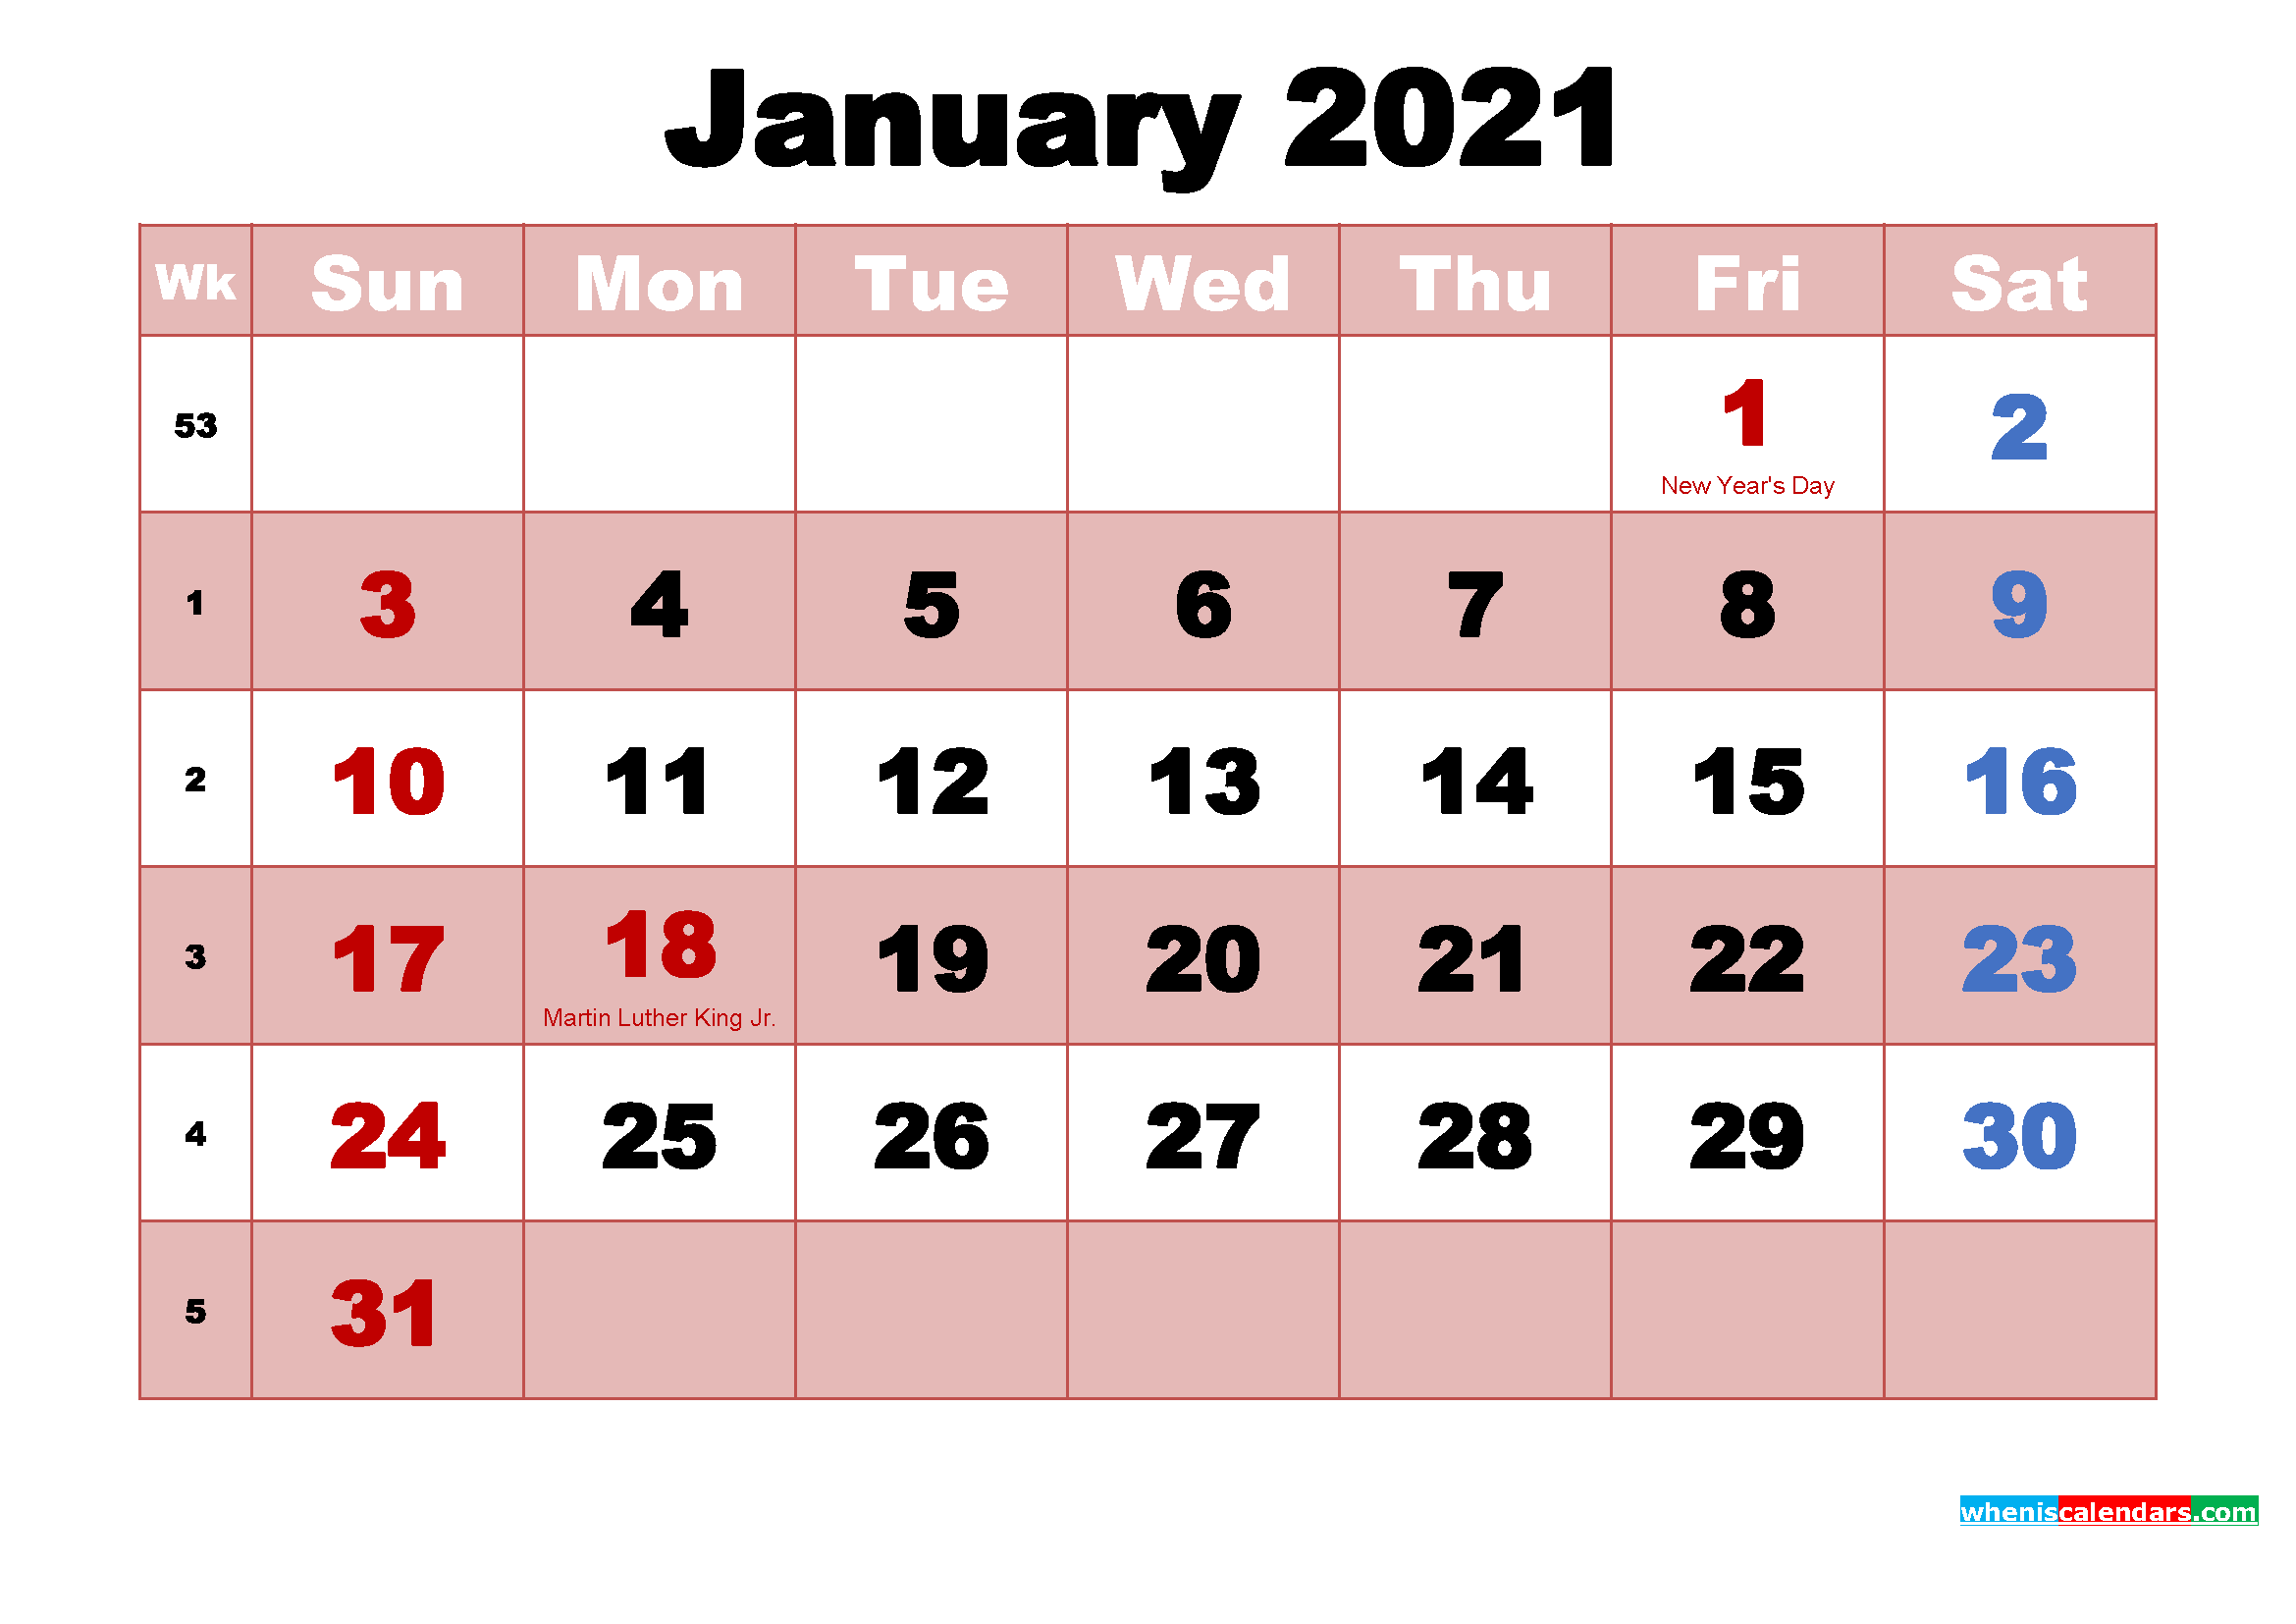 Printable January 2021 Calendar by Month